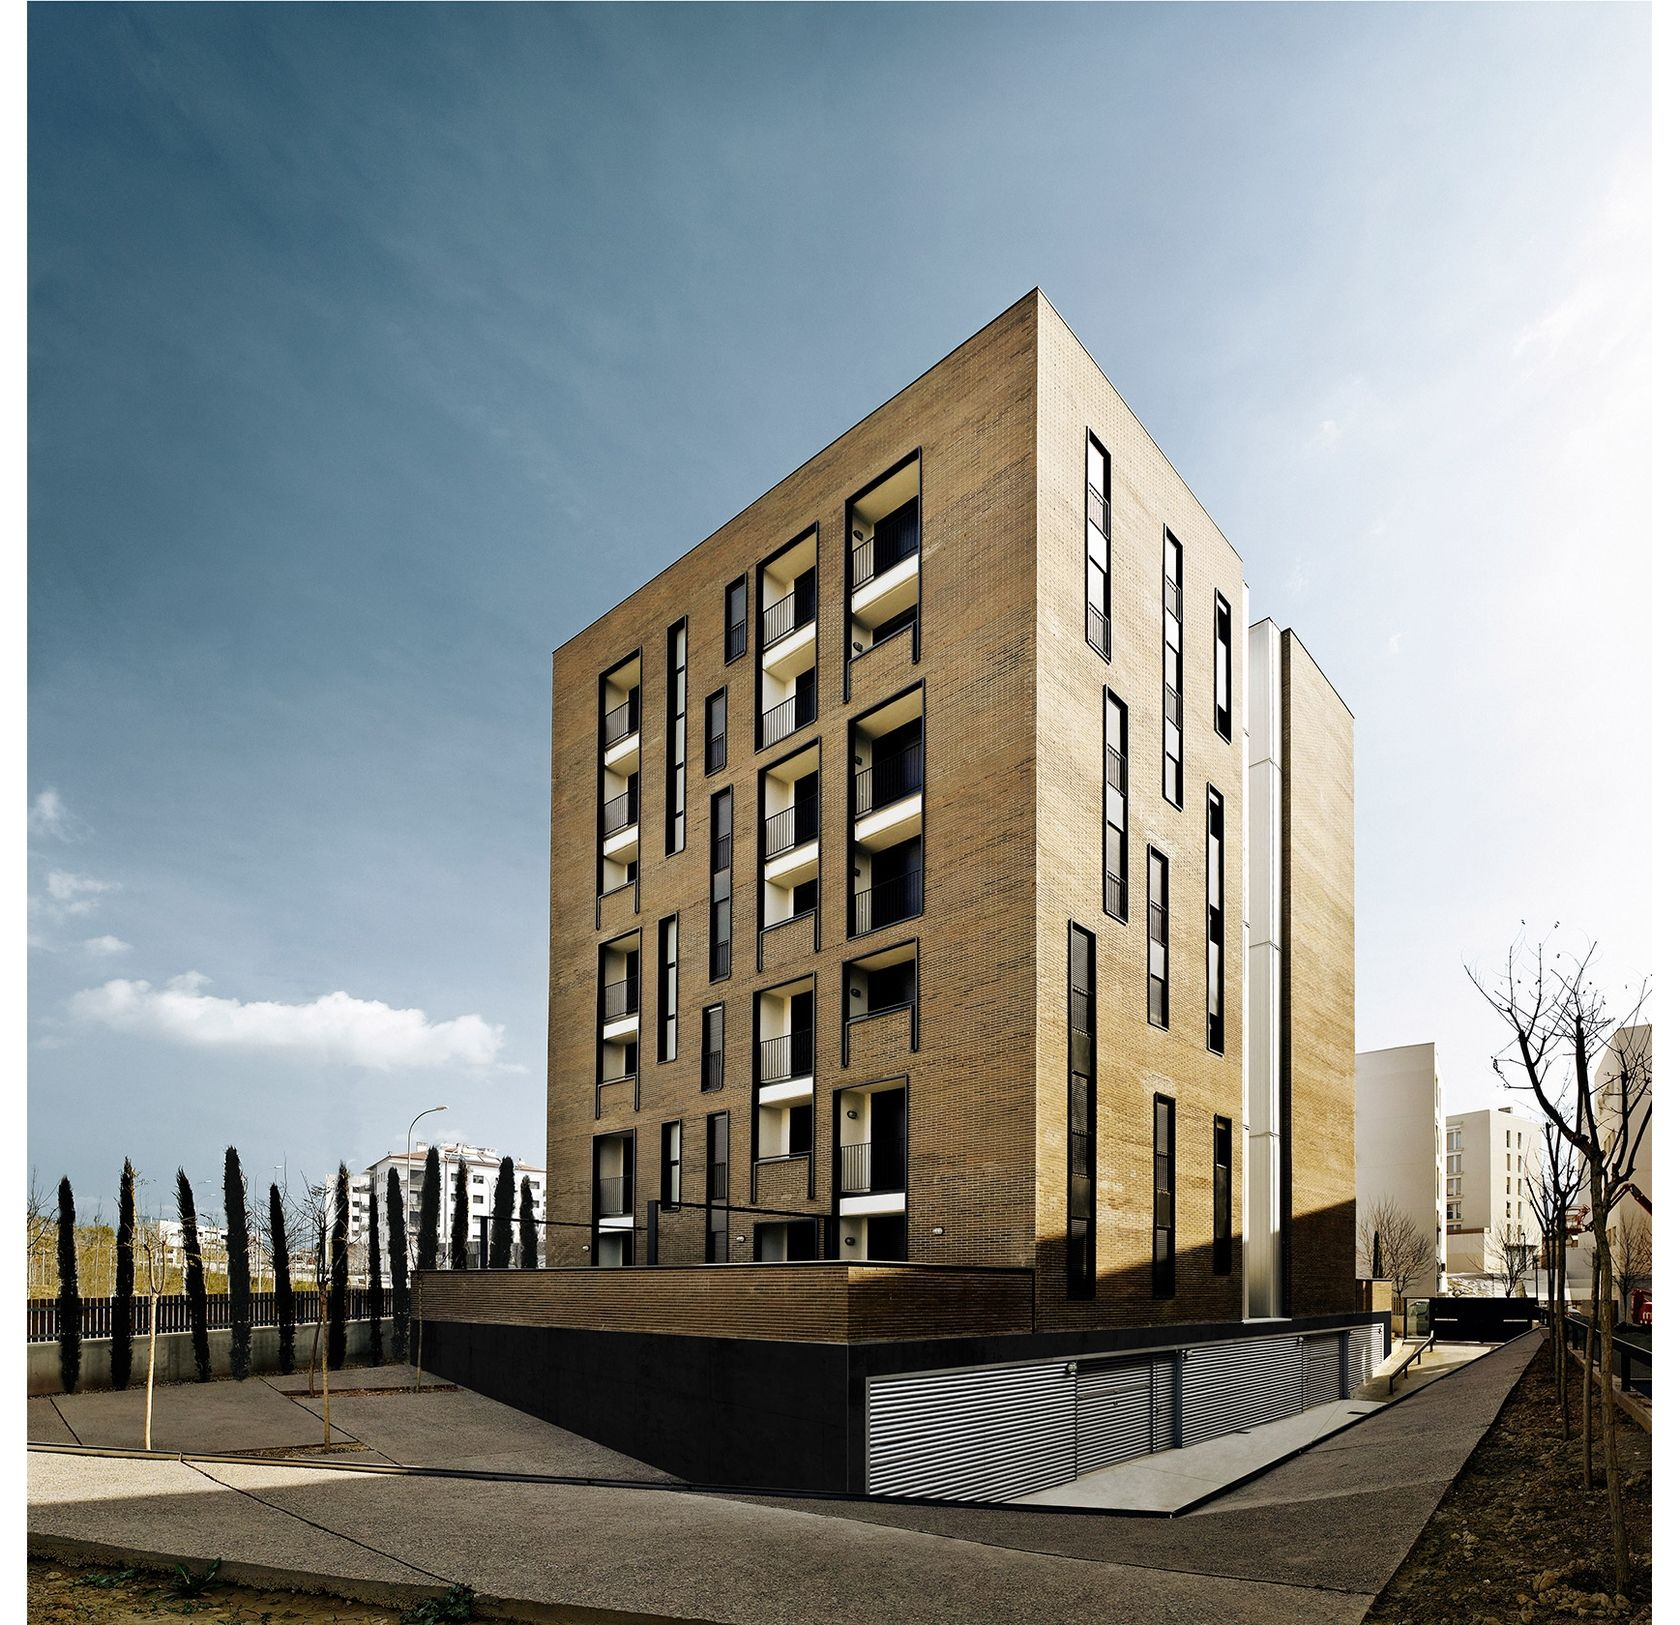 APARTMENT BUILDING WITH 42 UNITS FOR YOUTHS - Explore, Collect and Source architecture